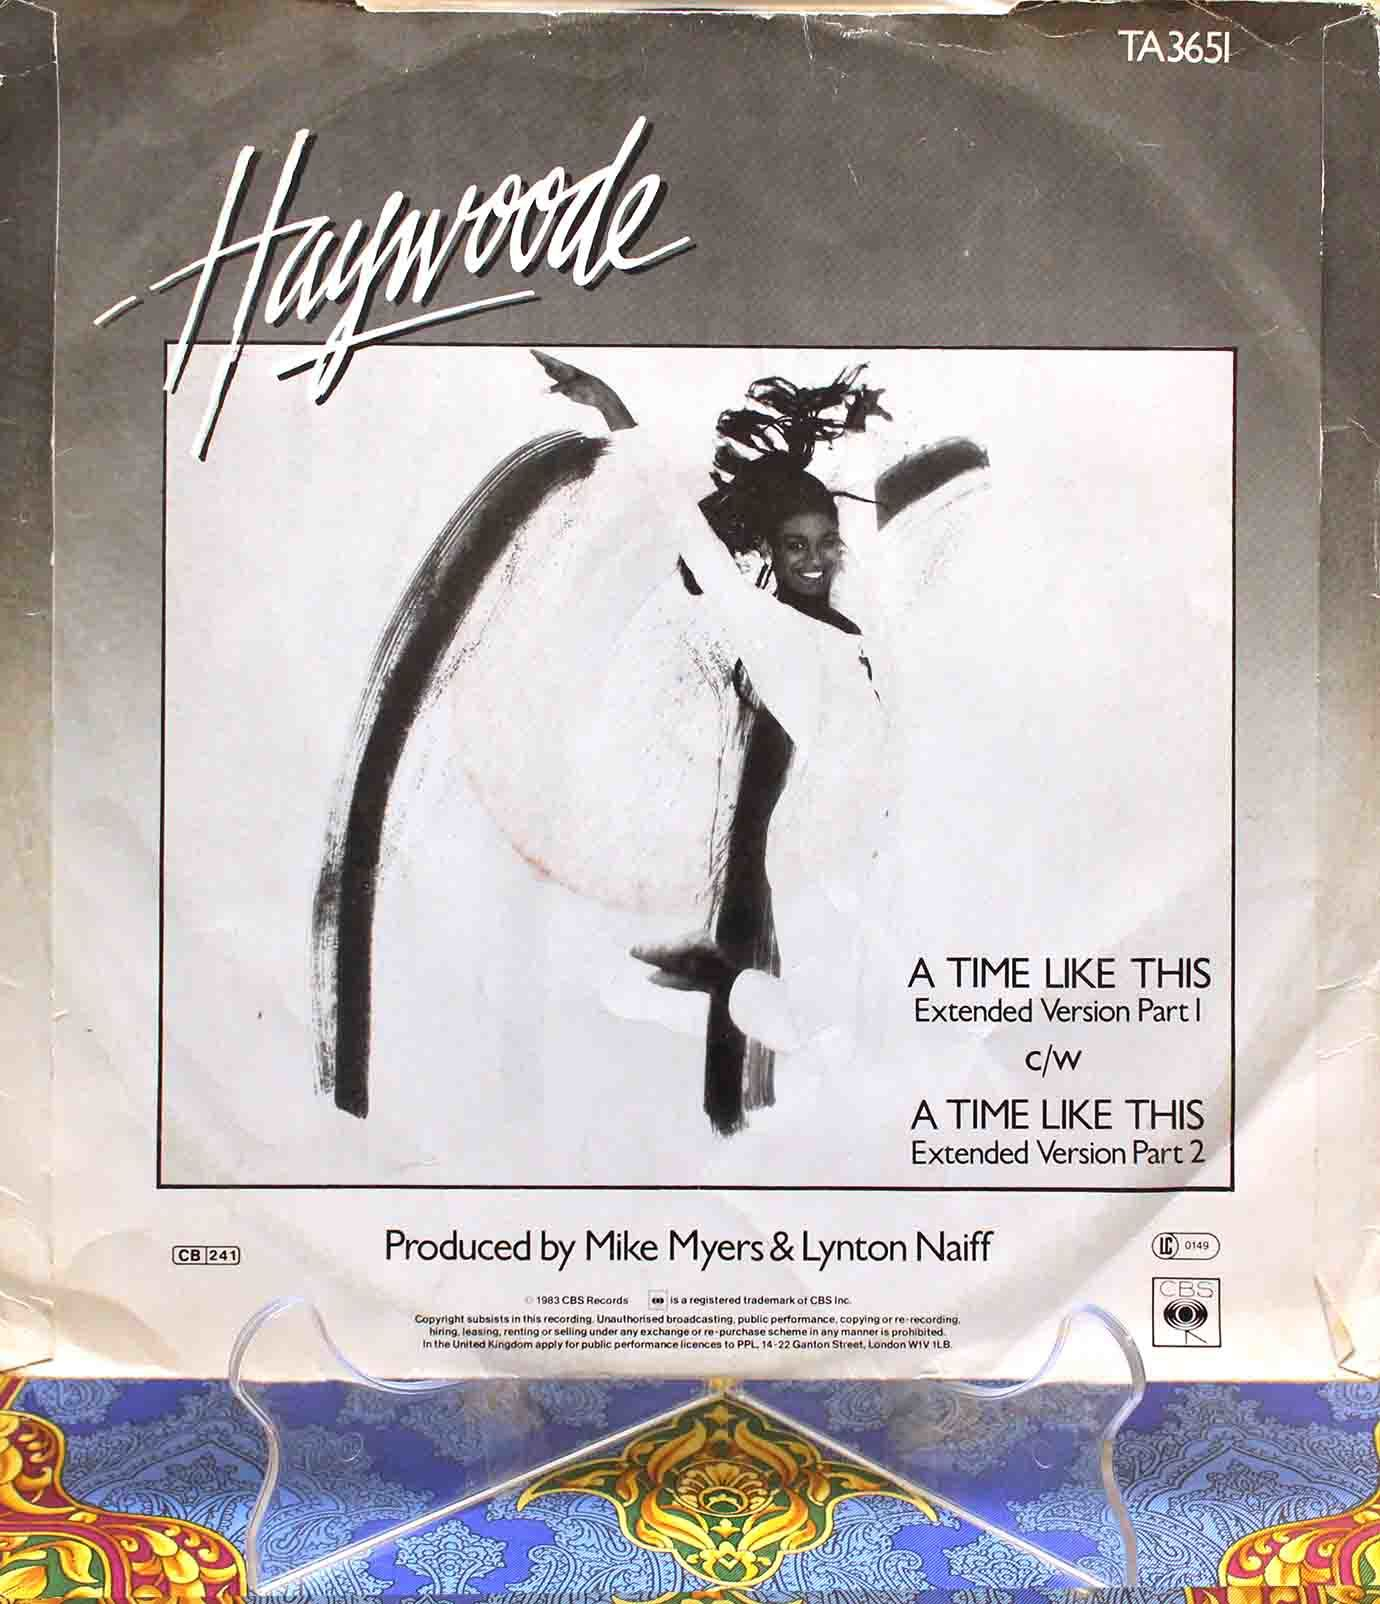 Haywoode – A Time Like This 02